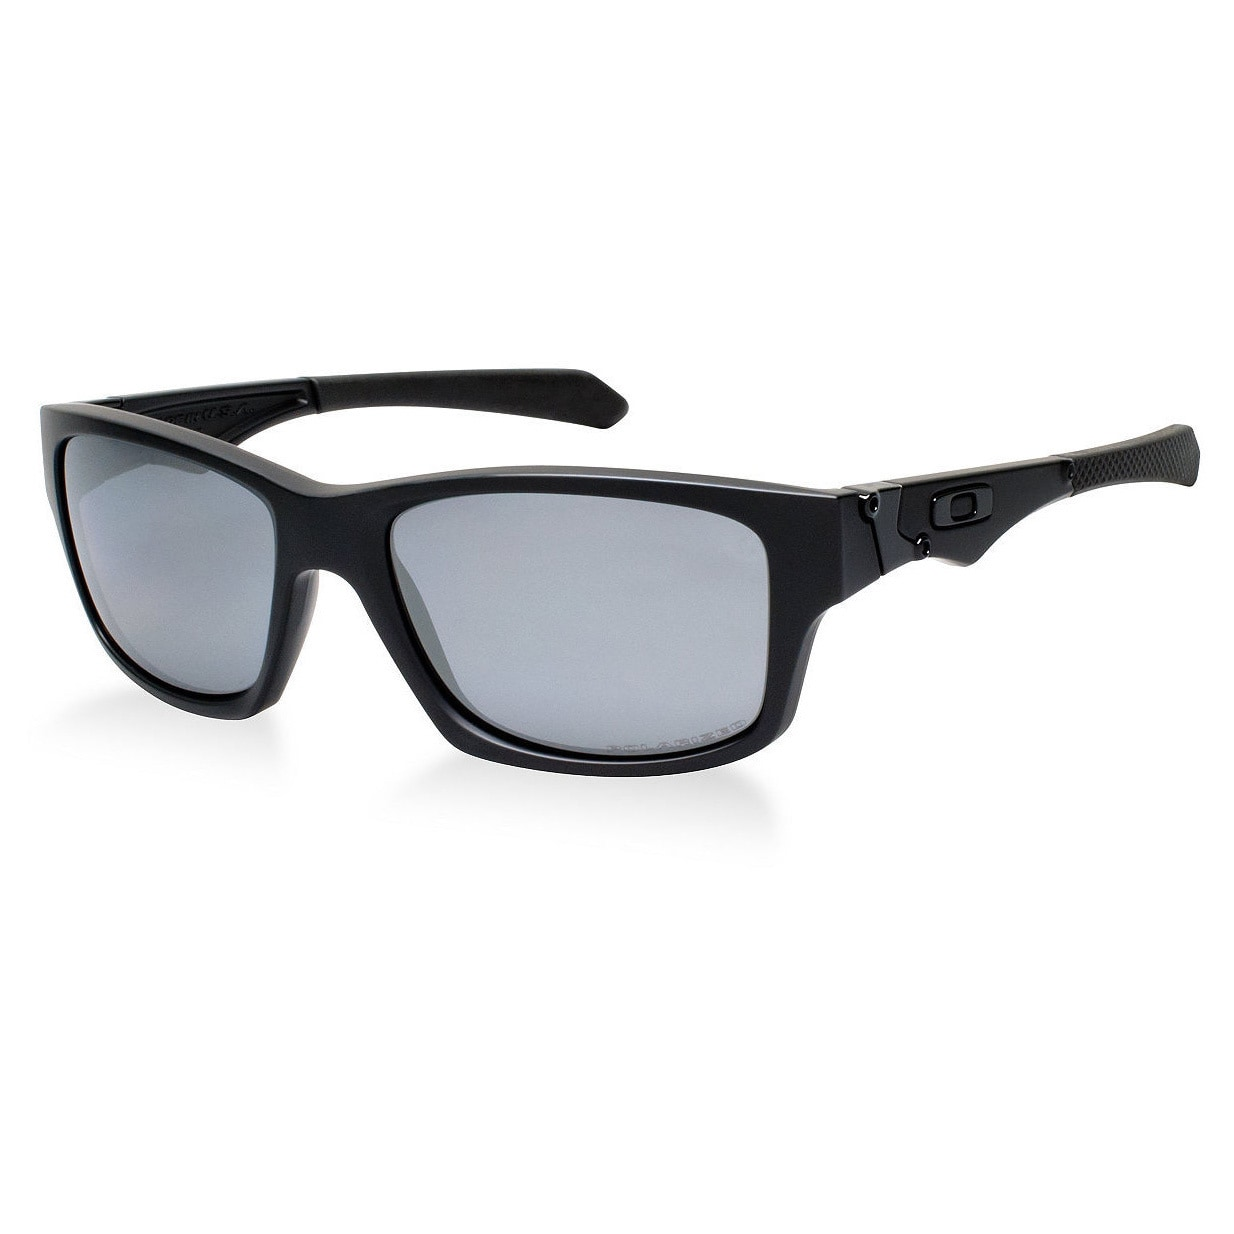 a2ce3c5a72 Shop Oakley Men s Jupiter Matte Black and Black Iridium Polarized Lens  Plastic Square Sunglasses - Free Shipping Today - Overstock - 13443208